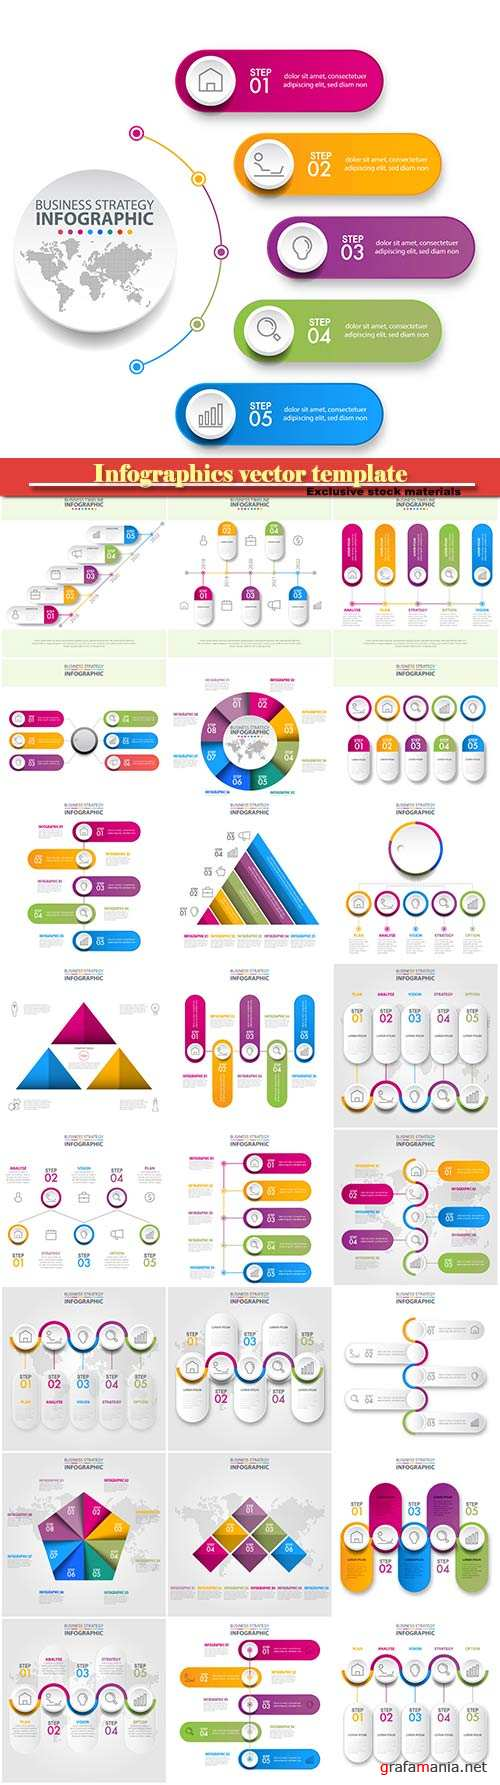 Infographics vector template for business presentations or information banner # 11